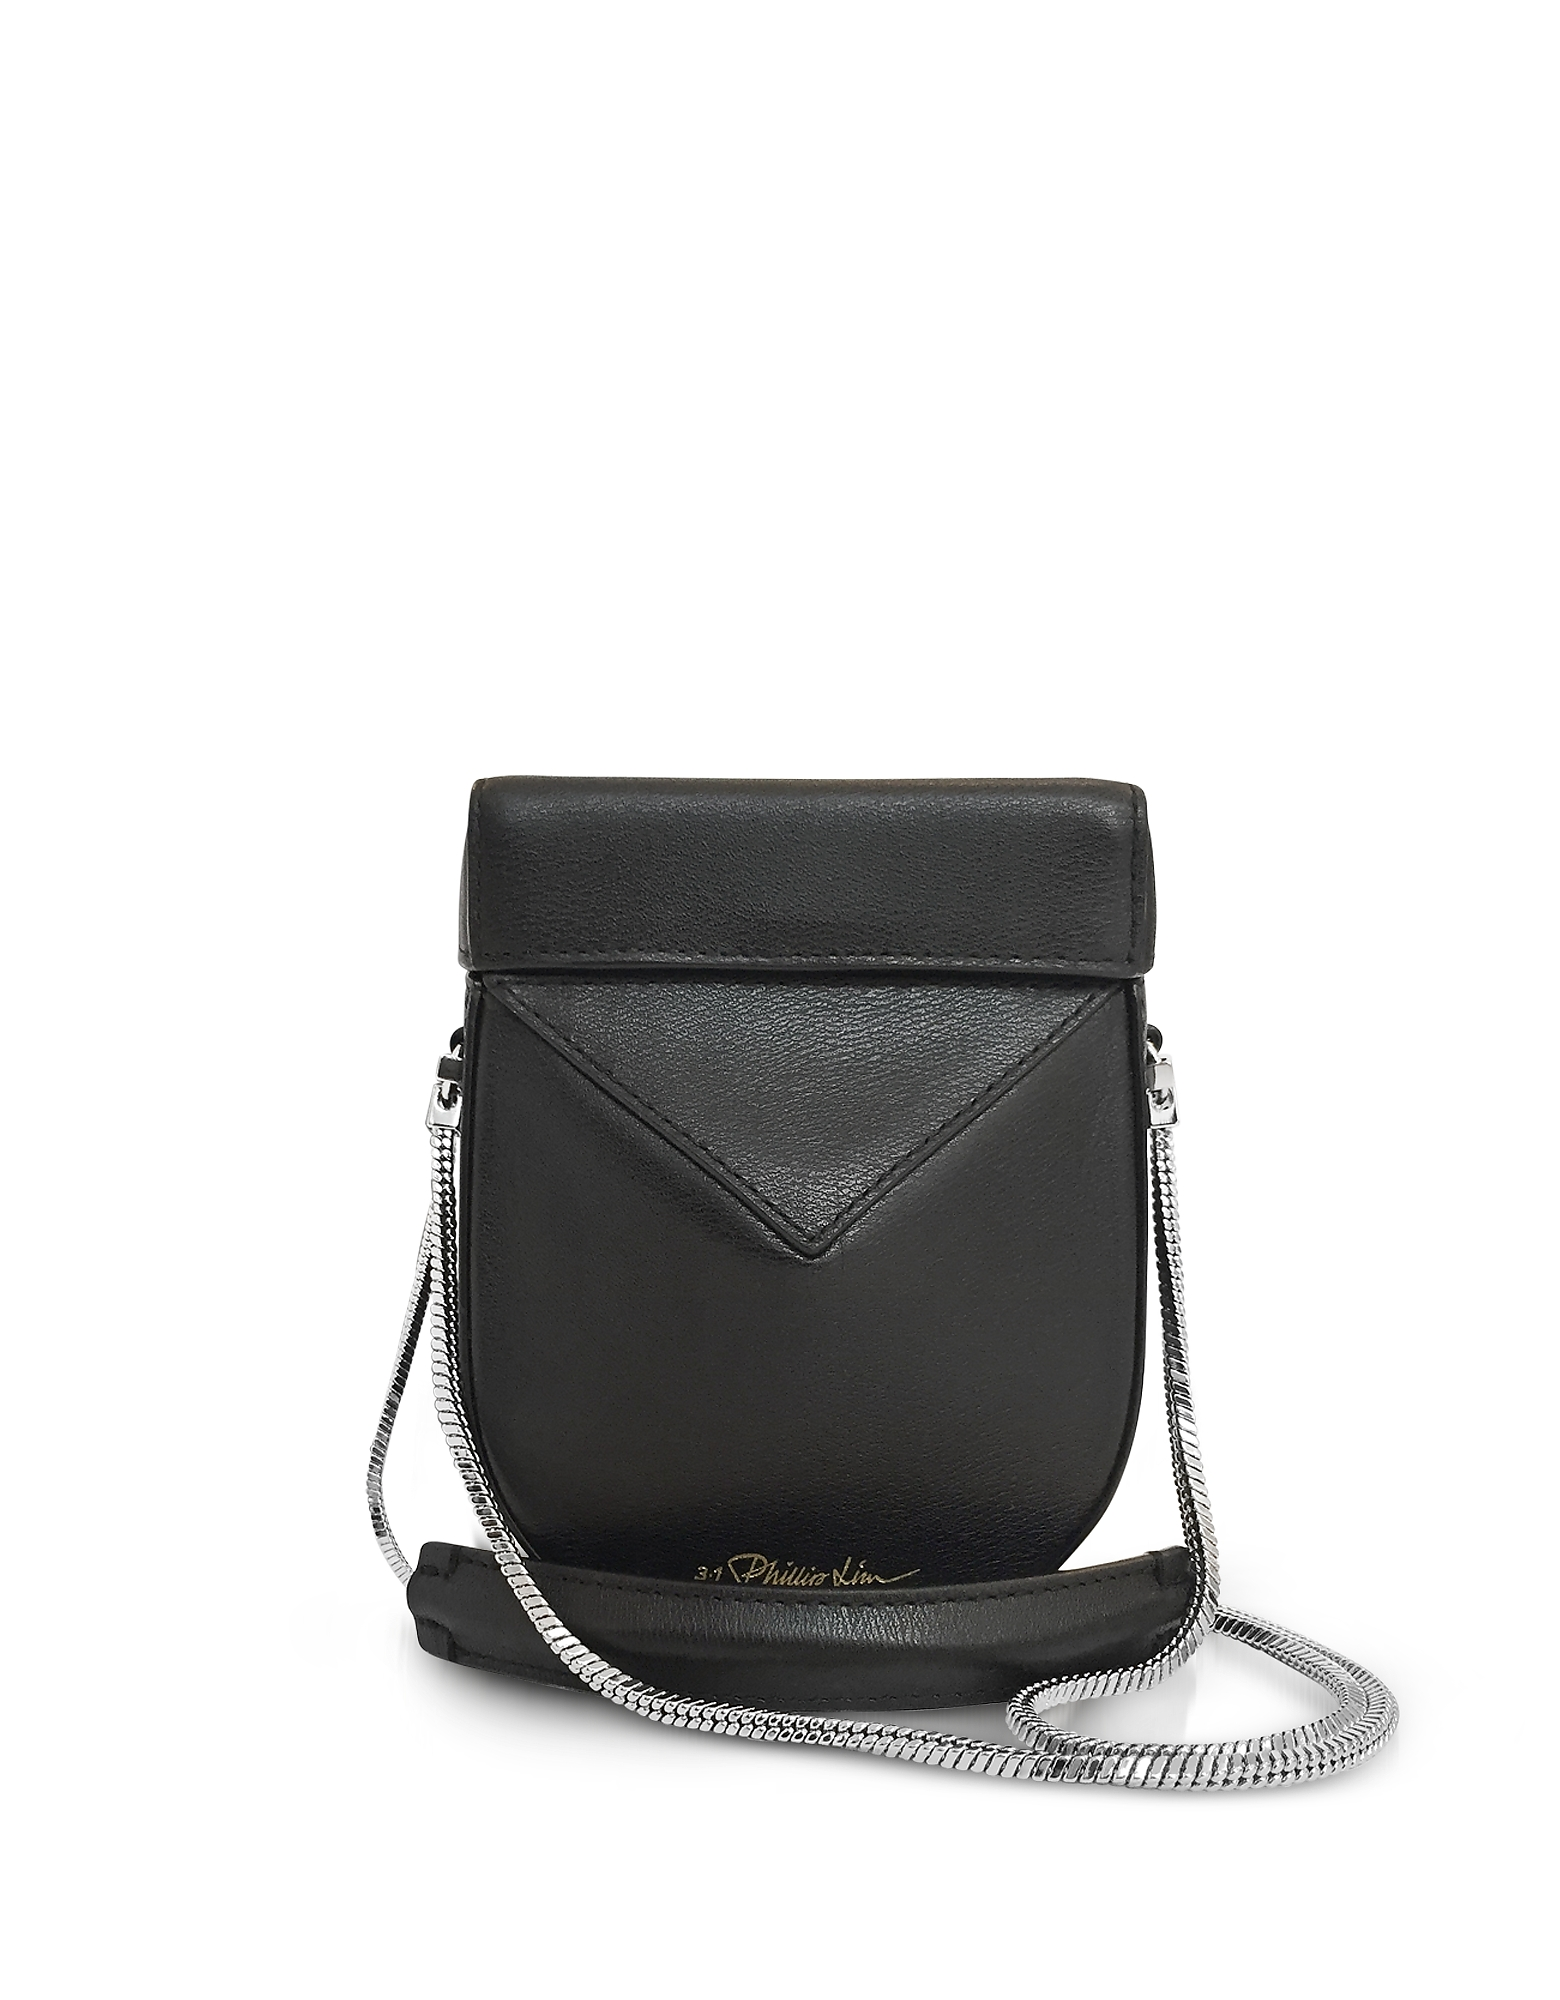 Image of 3.1 Phillip Lim Designer Handbags, Black Leather Soleil Mini Case